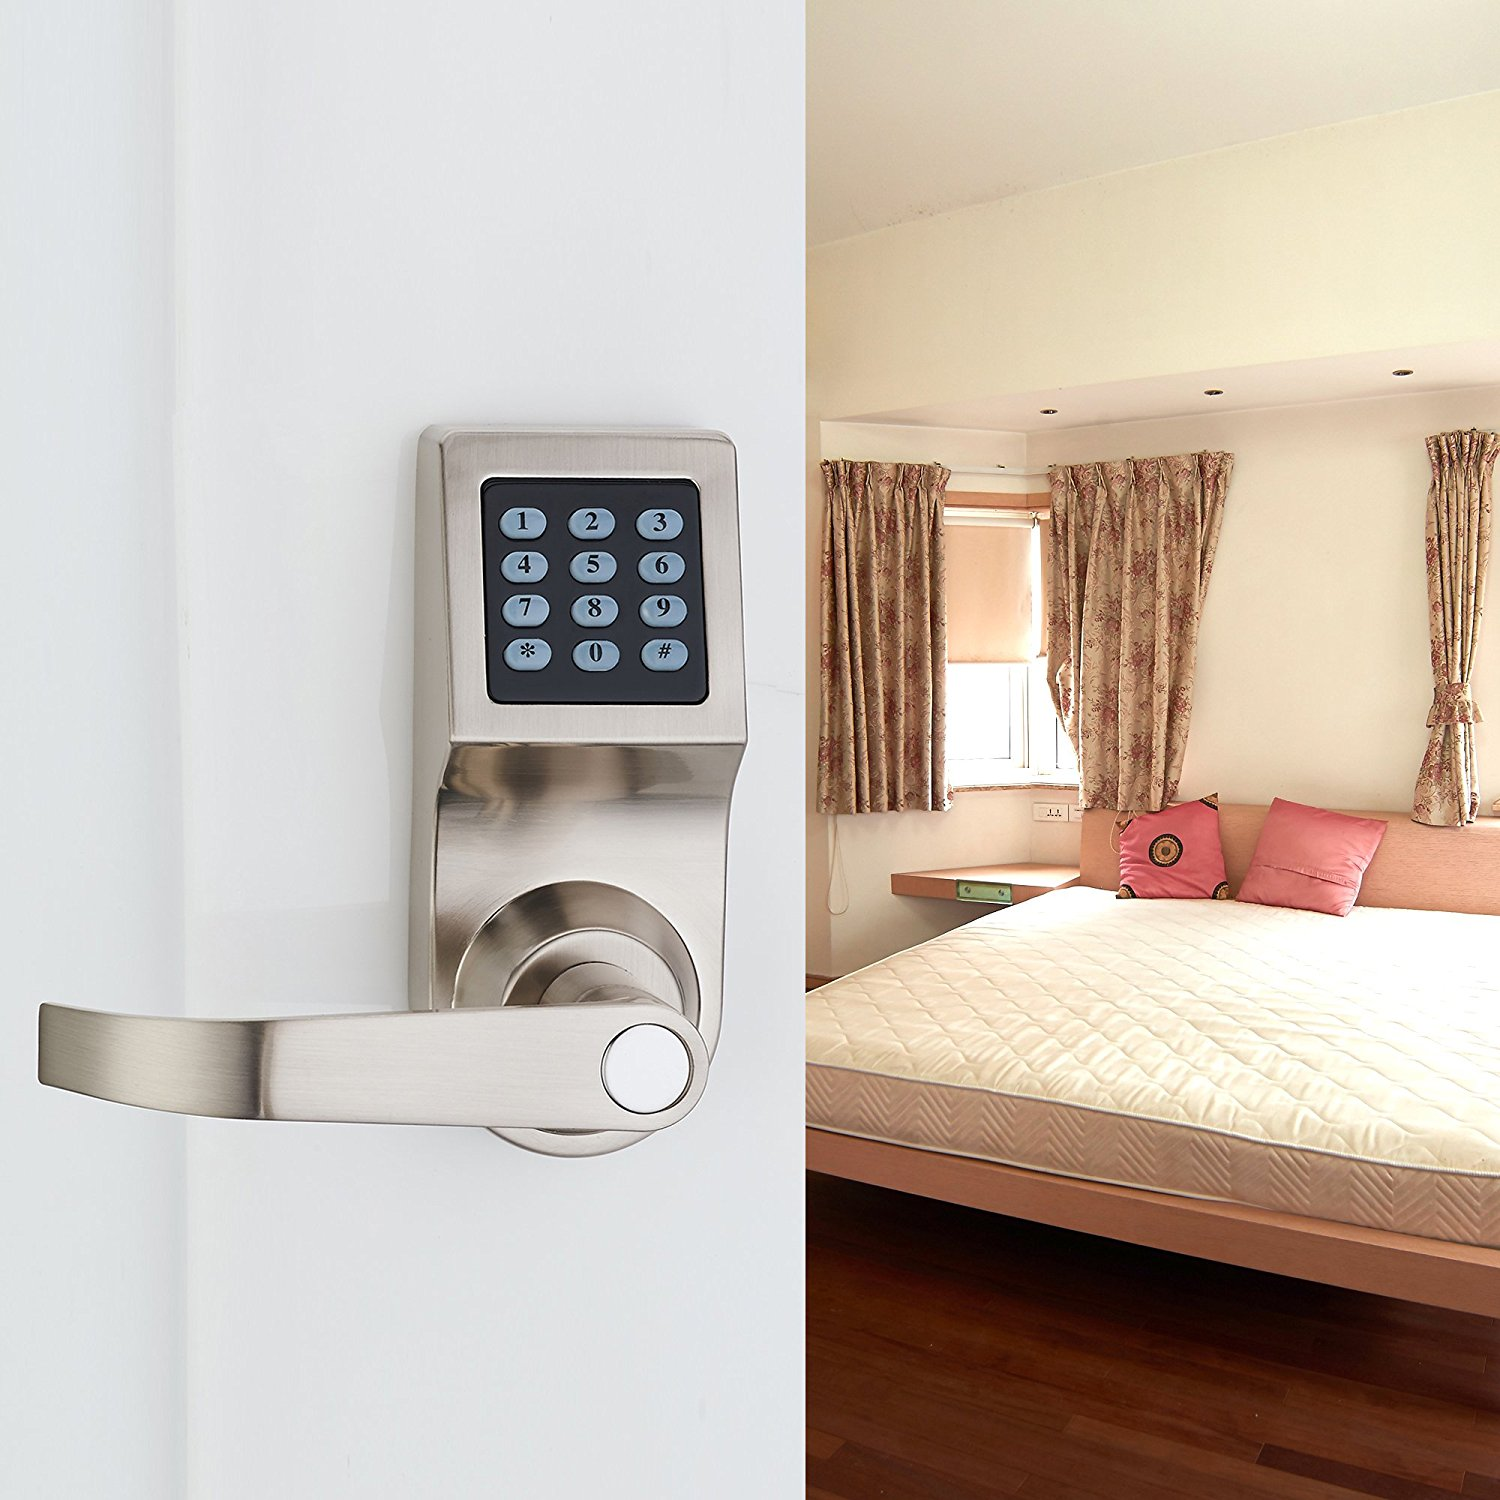 digital door lock electronic lock unlock with m1 card code and